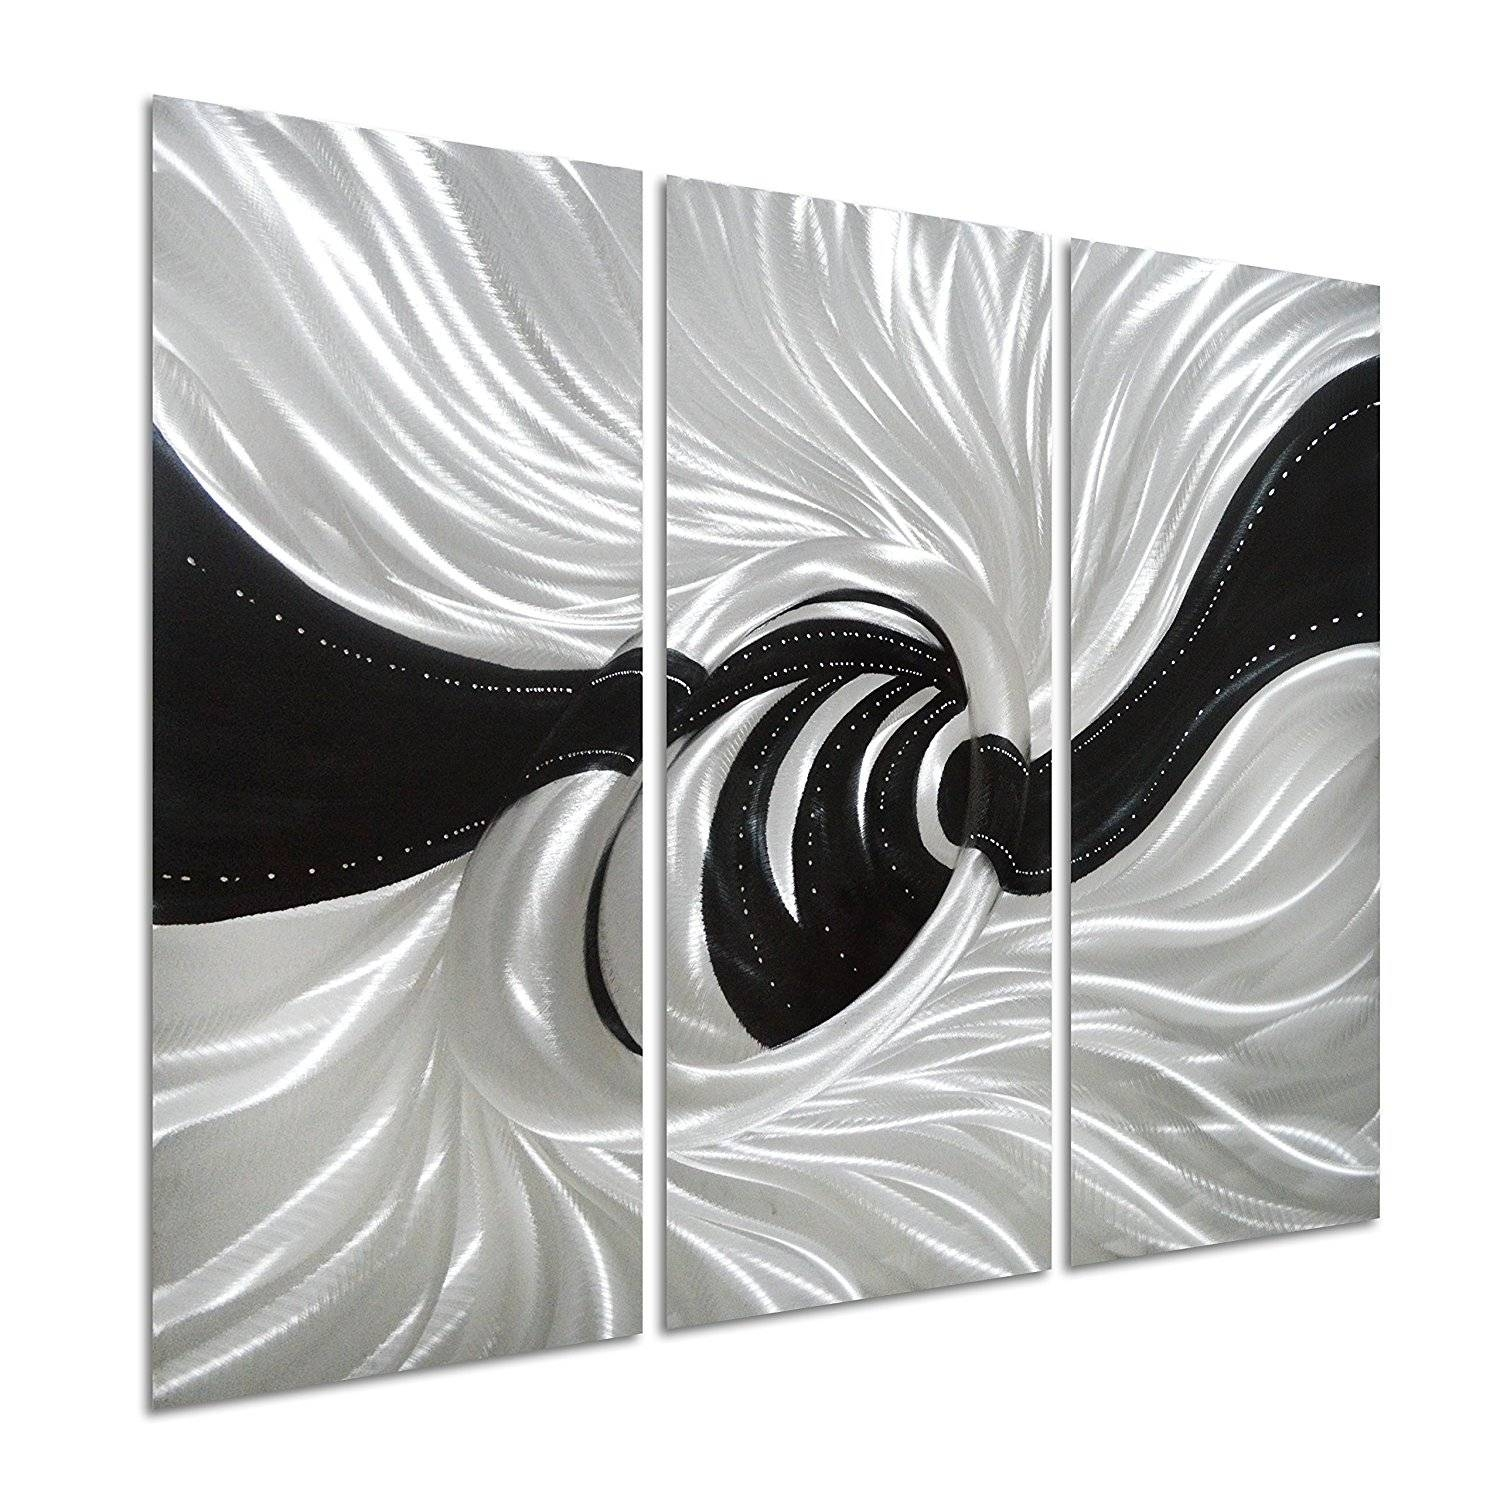 Pure Art Silver Worm Hole – Abstract Metal Wall Art Decor Of 3 Intended For Recent Silver Metal Wall Art (View 9 of 20)